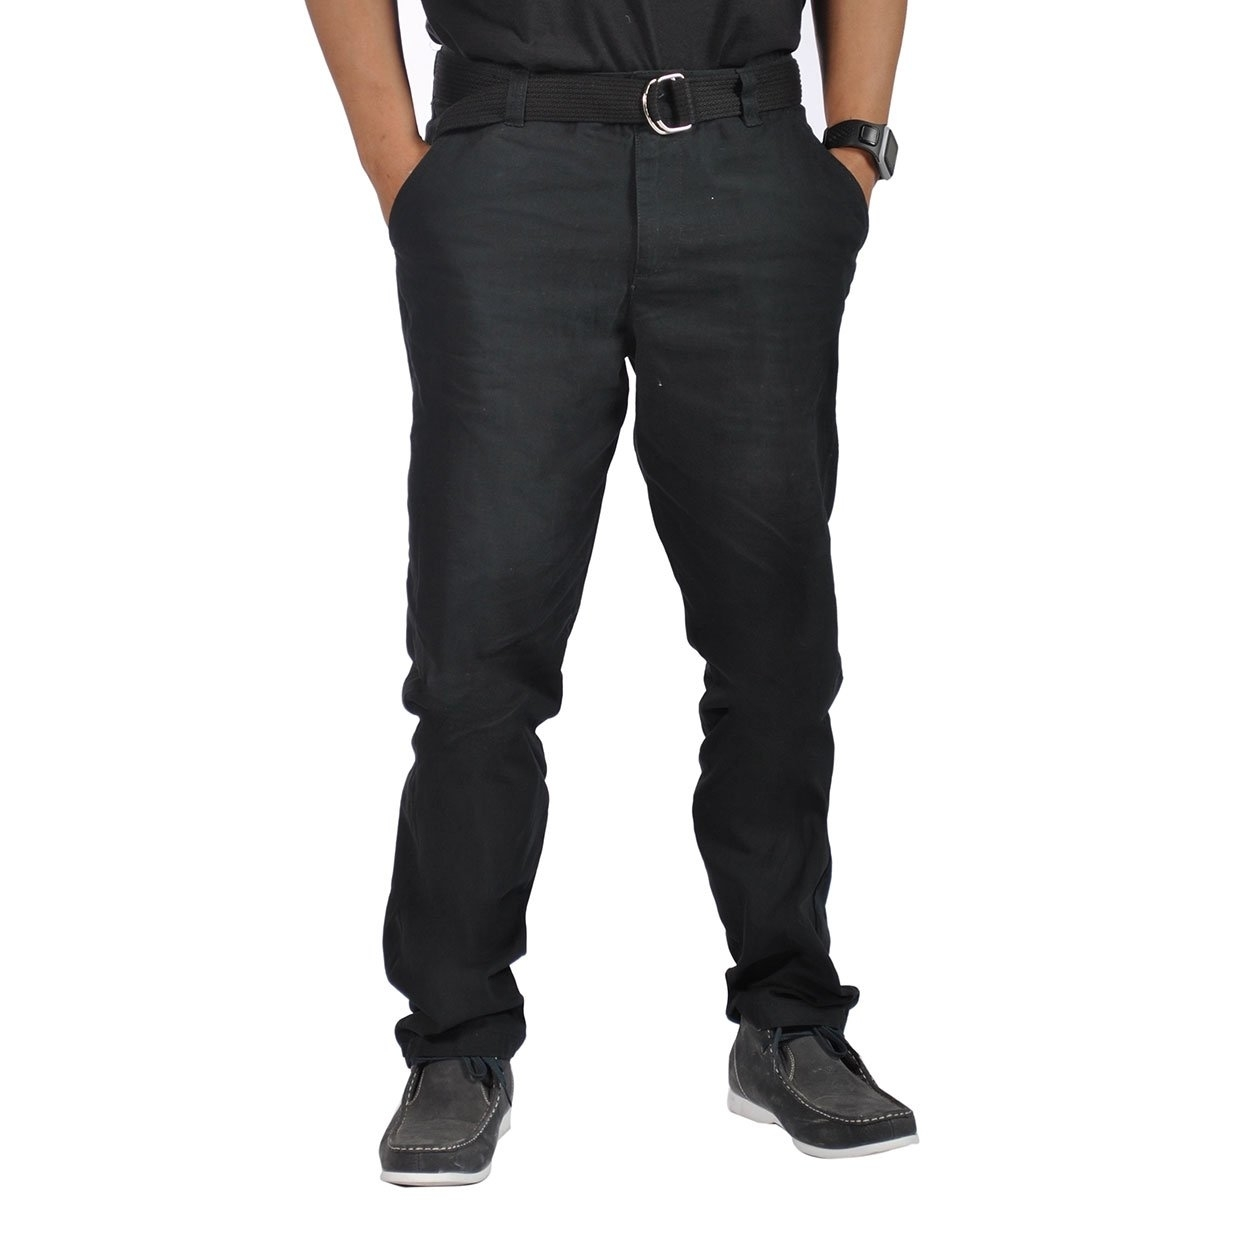 Mens Relaxed fit Double Ring Belt Casual Flat-Front Tapered Pants Black